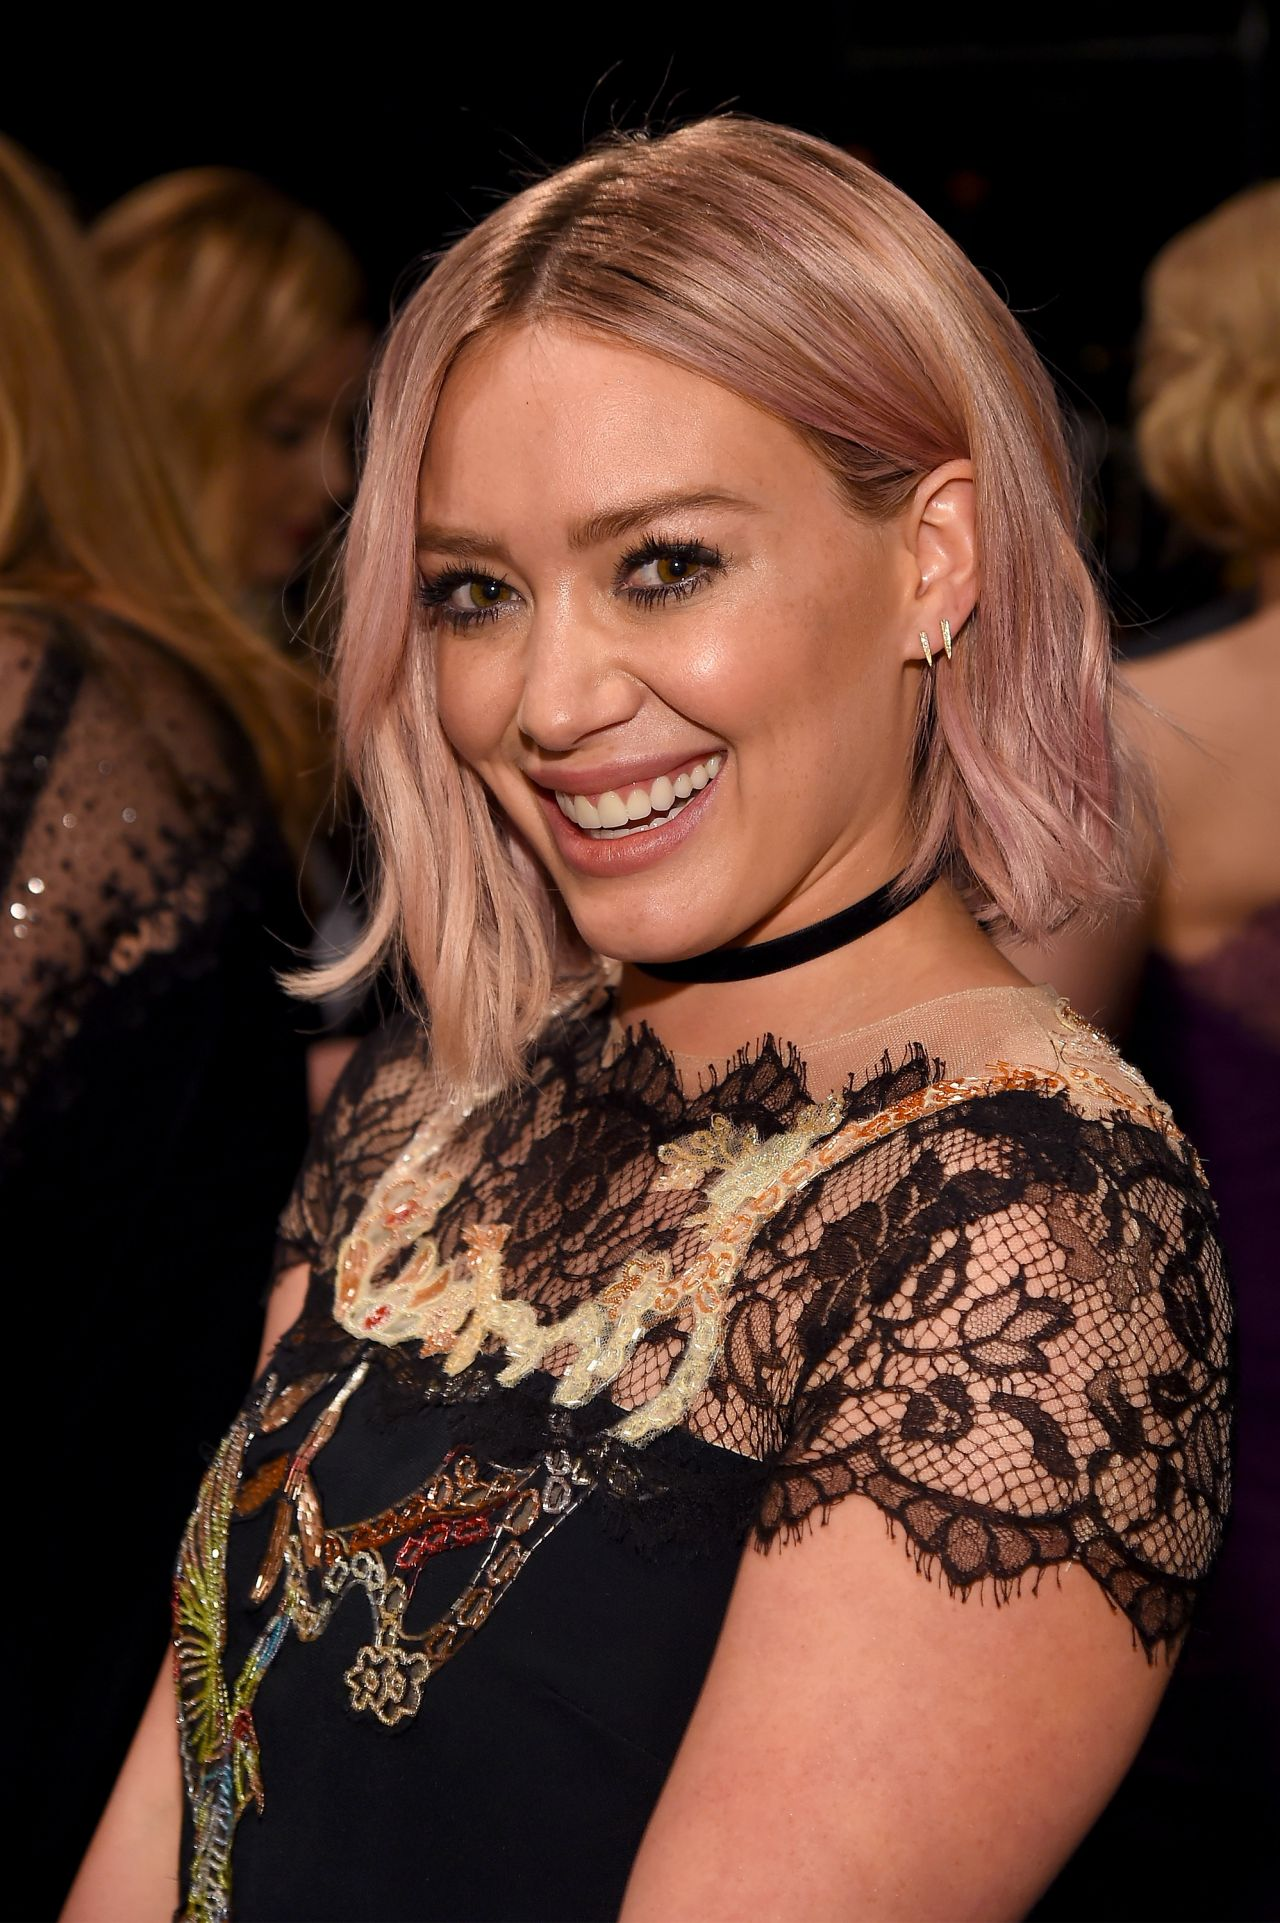 Hilary Duff - Monique Lhuillier Fall 2016 Presentation ... Hilary Duff